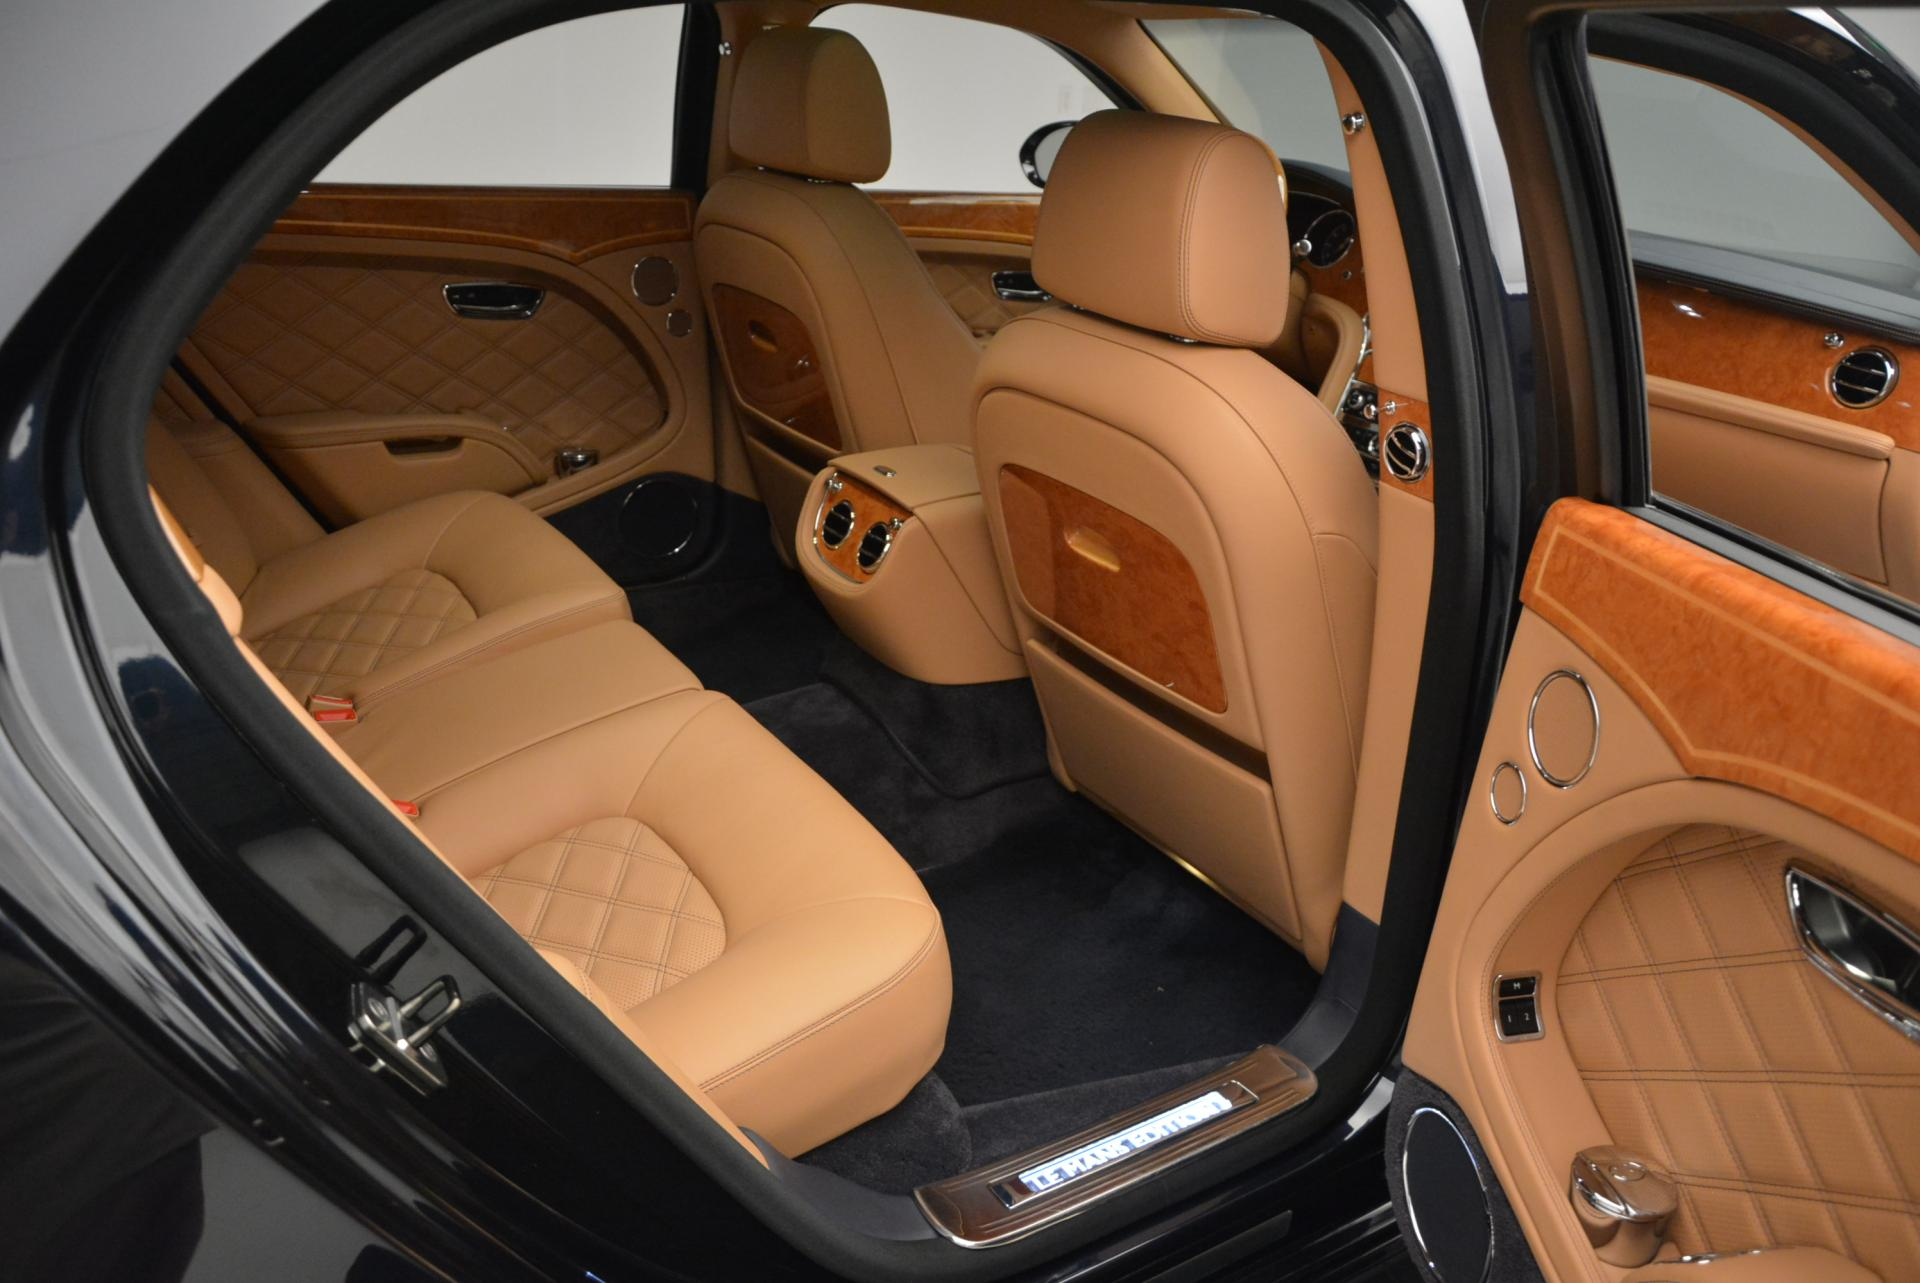 Used 2013 Bentley Mulsanne Le Mans Edition- Number 1 of 48 For Sale 0 In Greenwich, CT